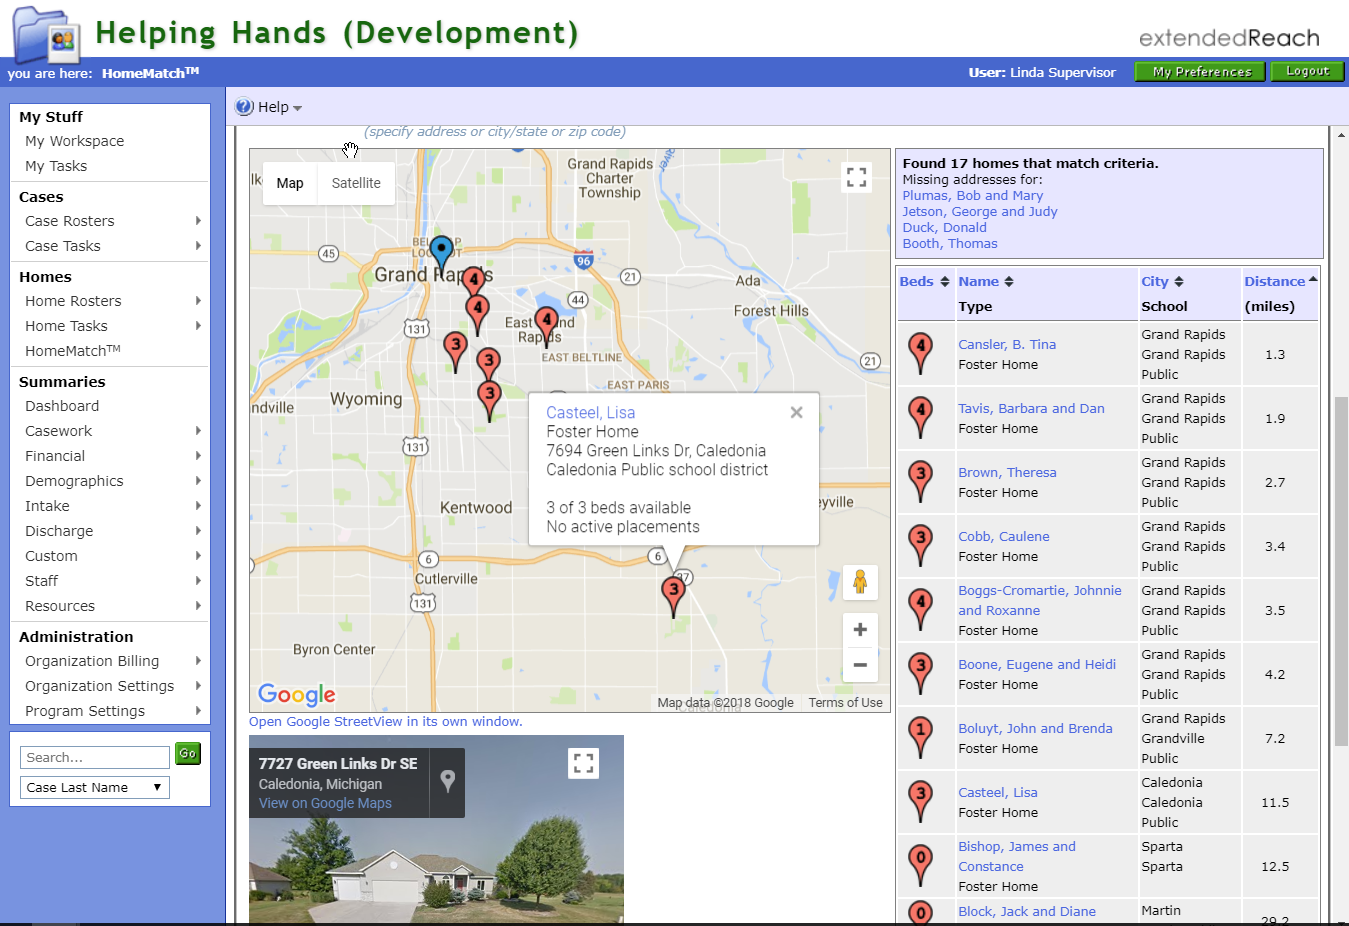 Foster homes can be viewed an filtered by geographic location, type of home, number of beds, and more